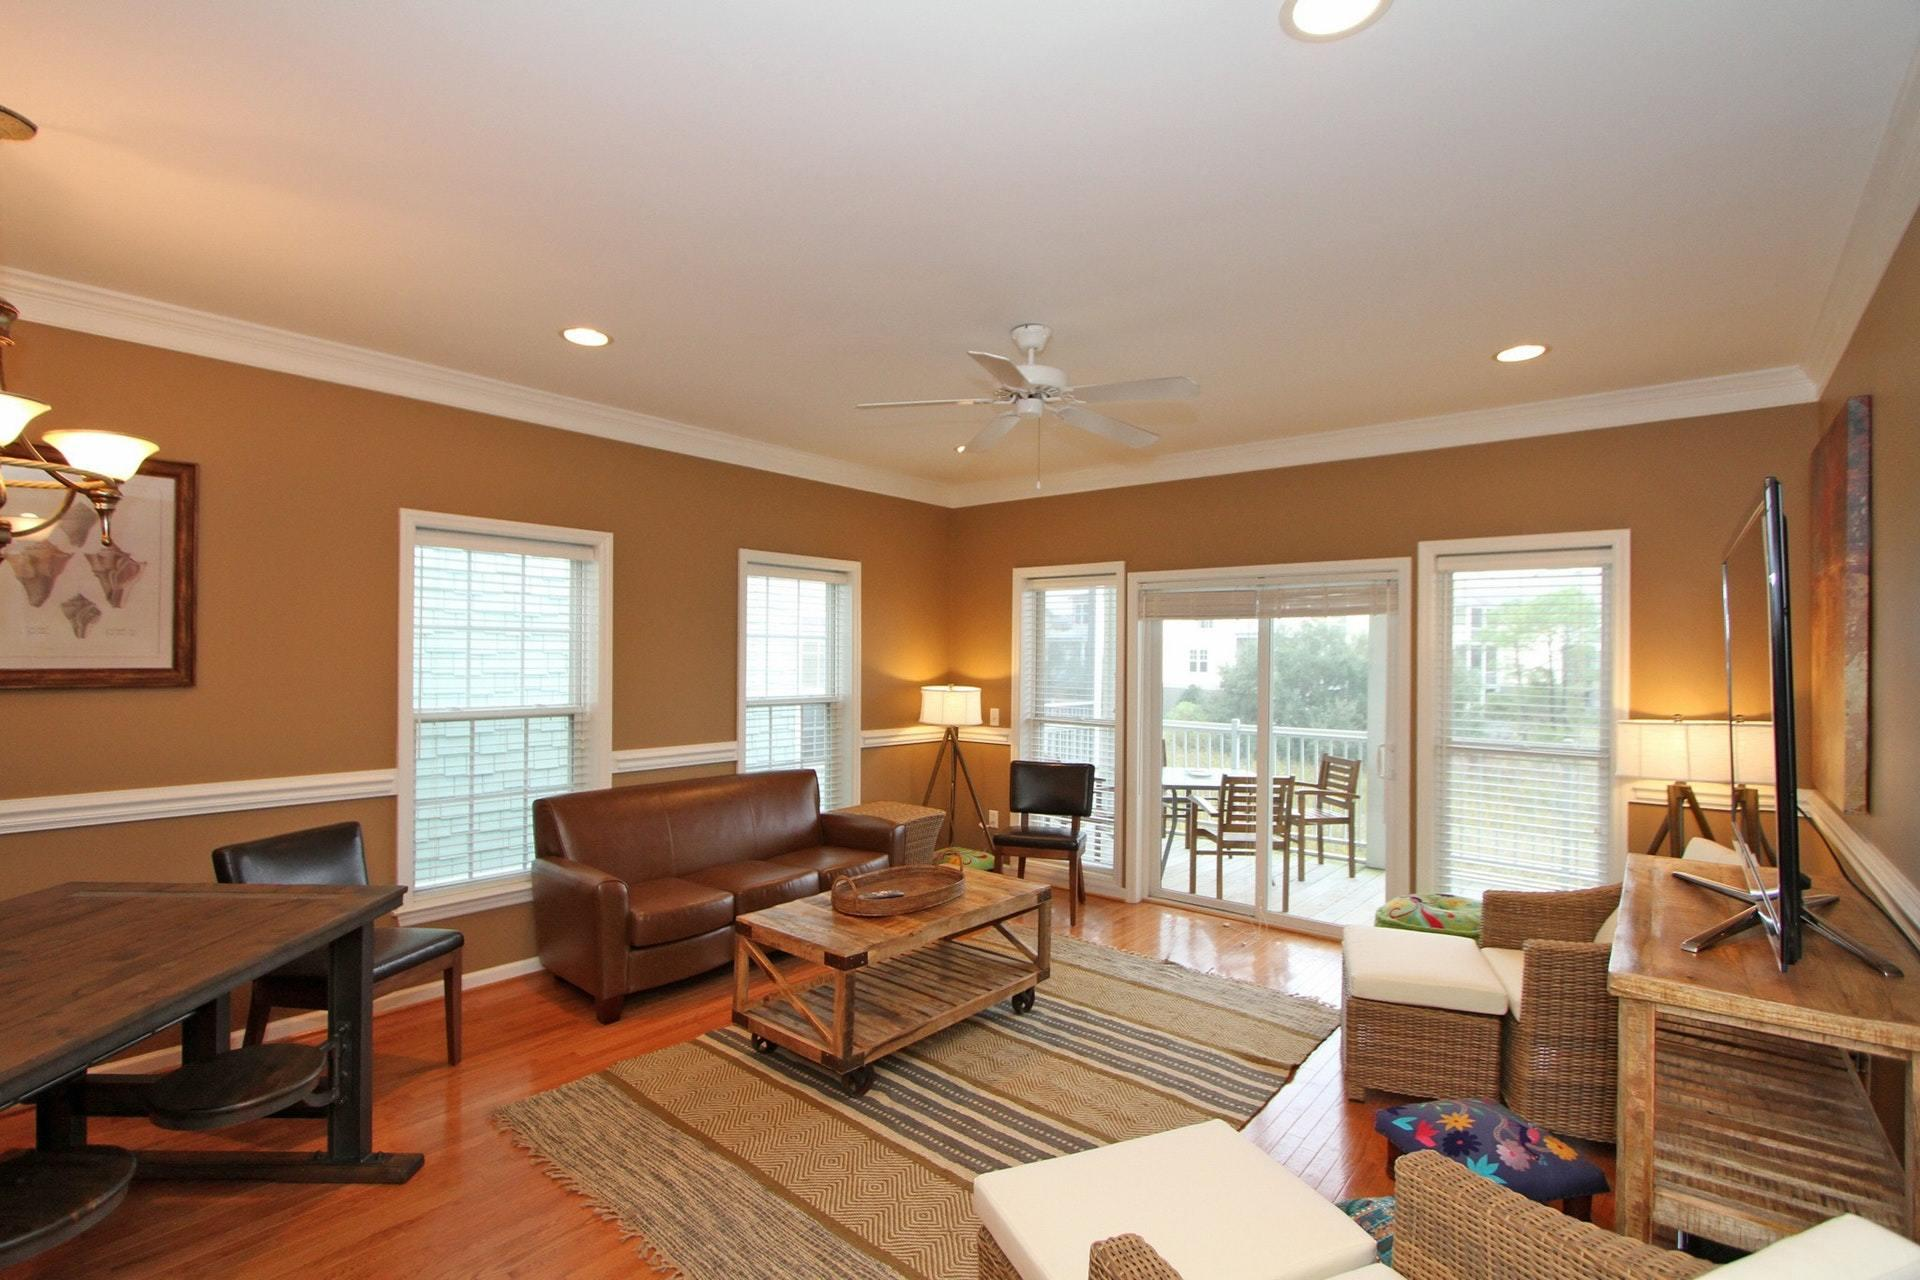 Waters Edge Homes For Sale - 85 2nd, Folly Beach, SC - 14